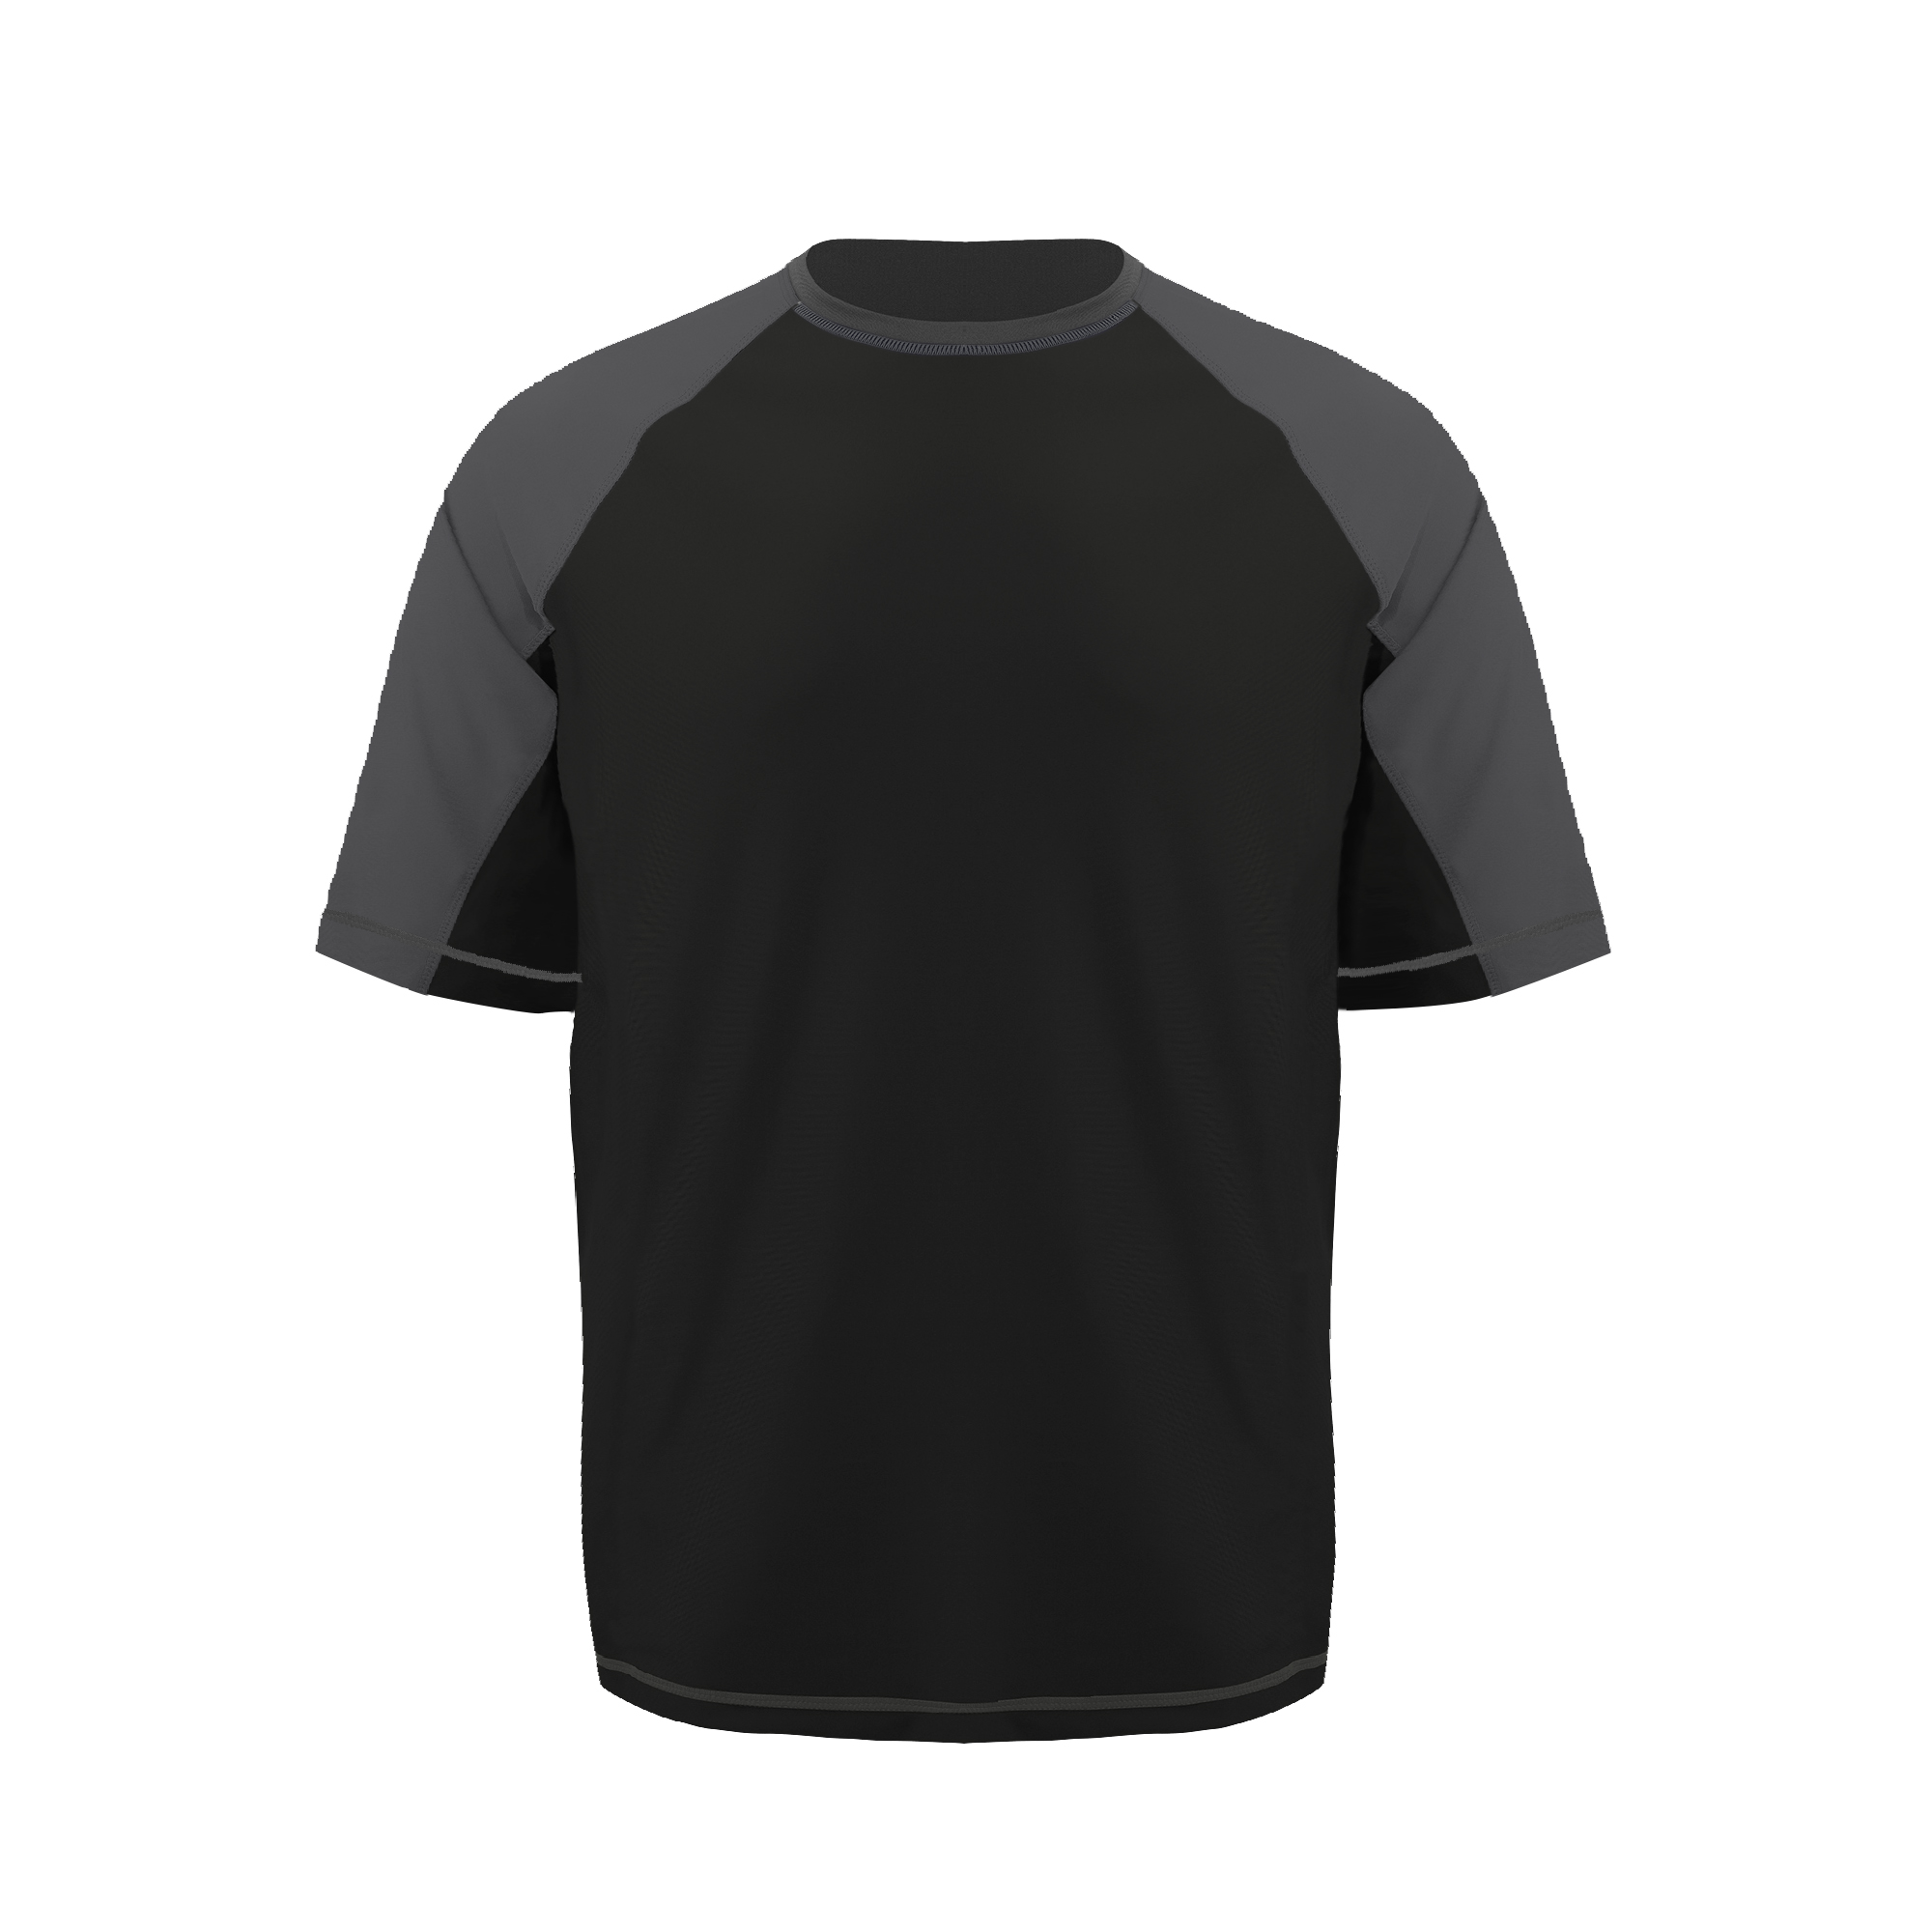 UPF UV 50 30mens sleeve t shirts plain sportswear coolest men's